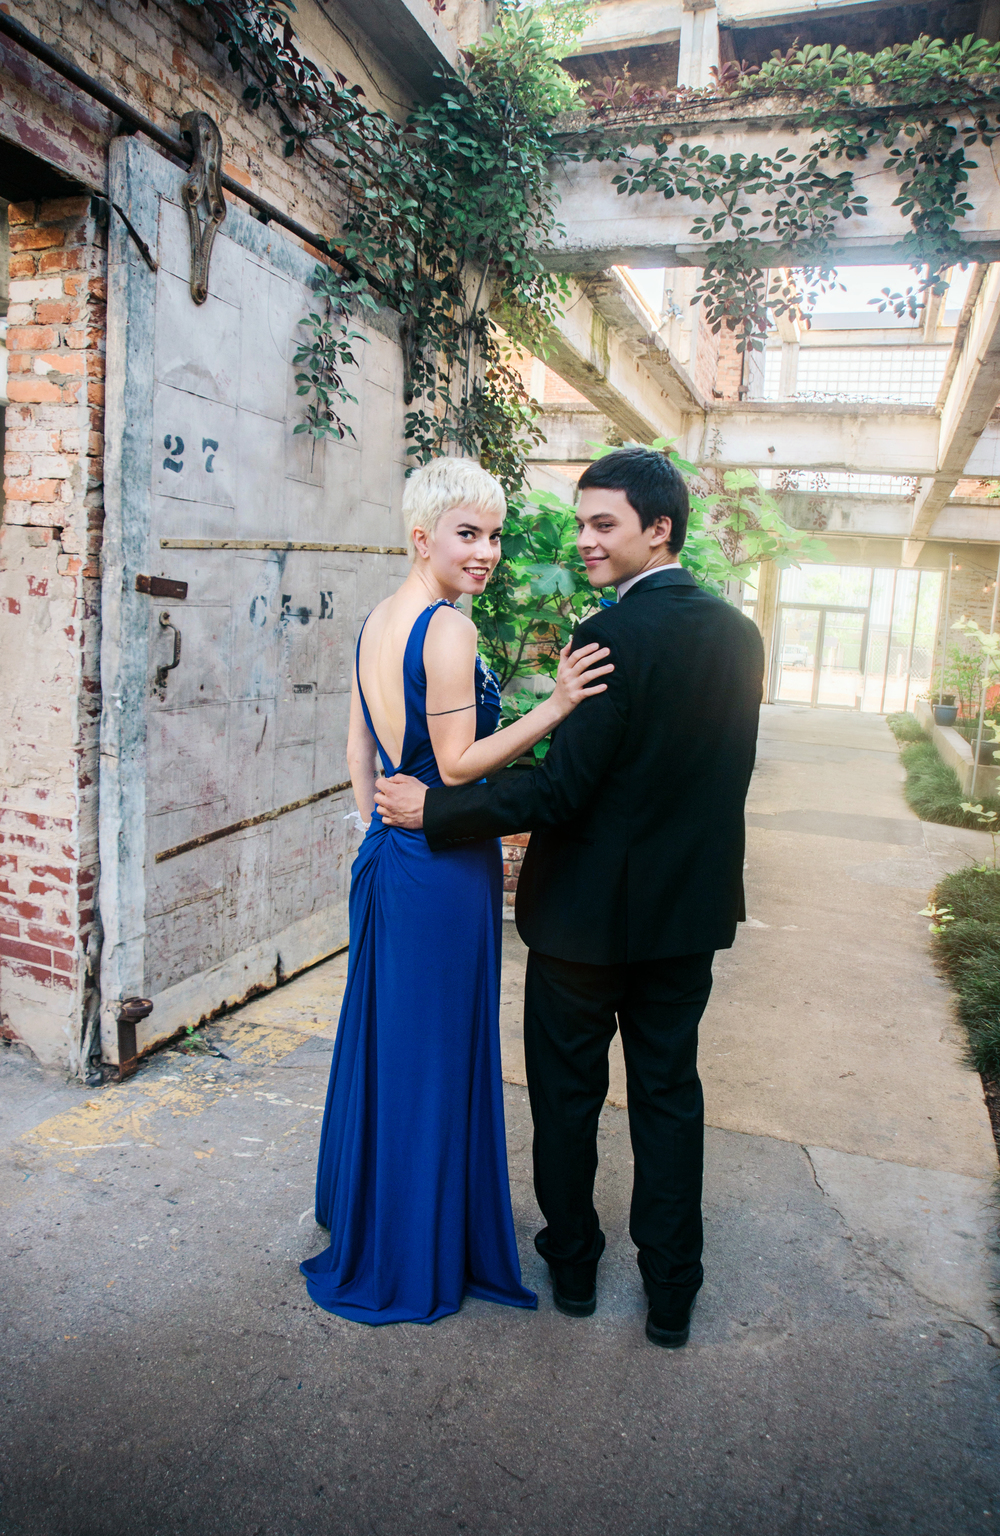 Karen Kelly Studios -Prom16 - Sam and Krista02.jpg